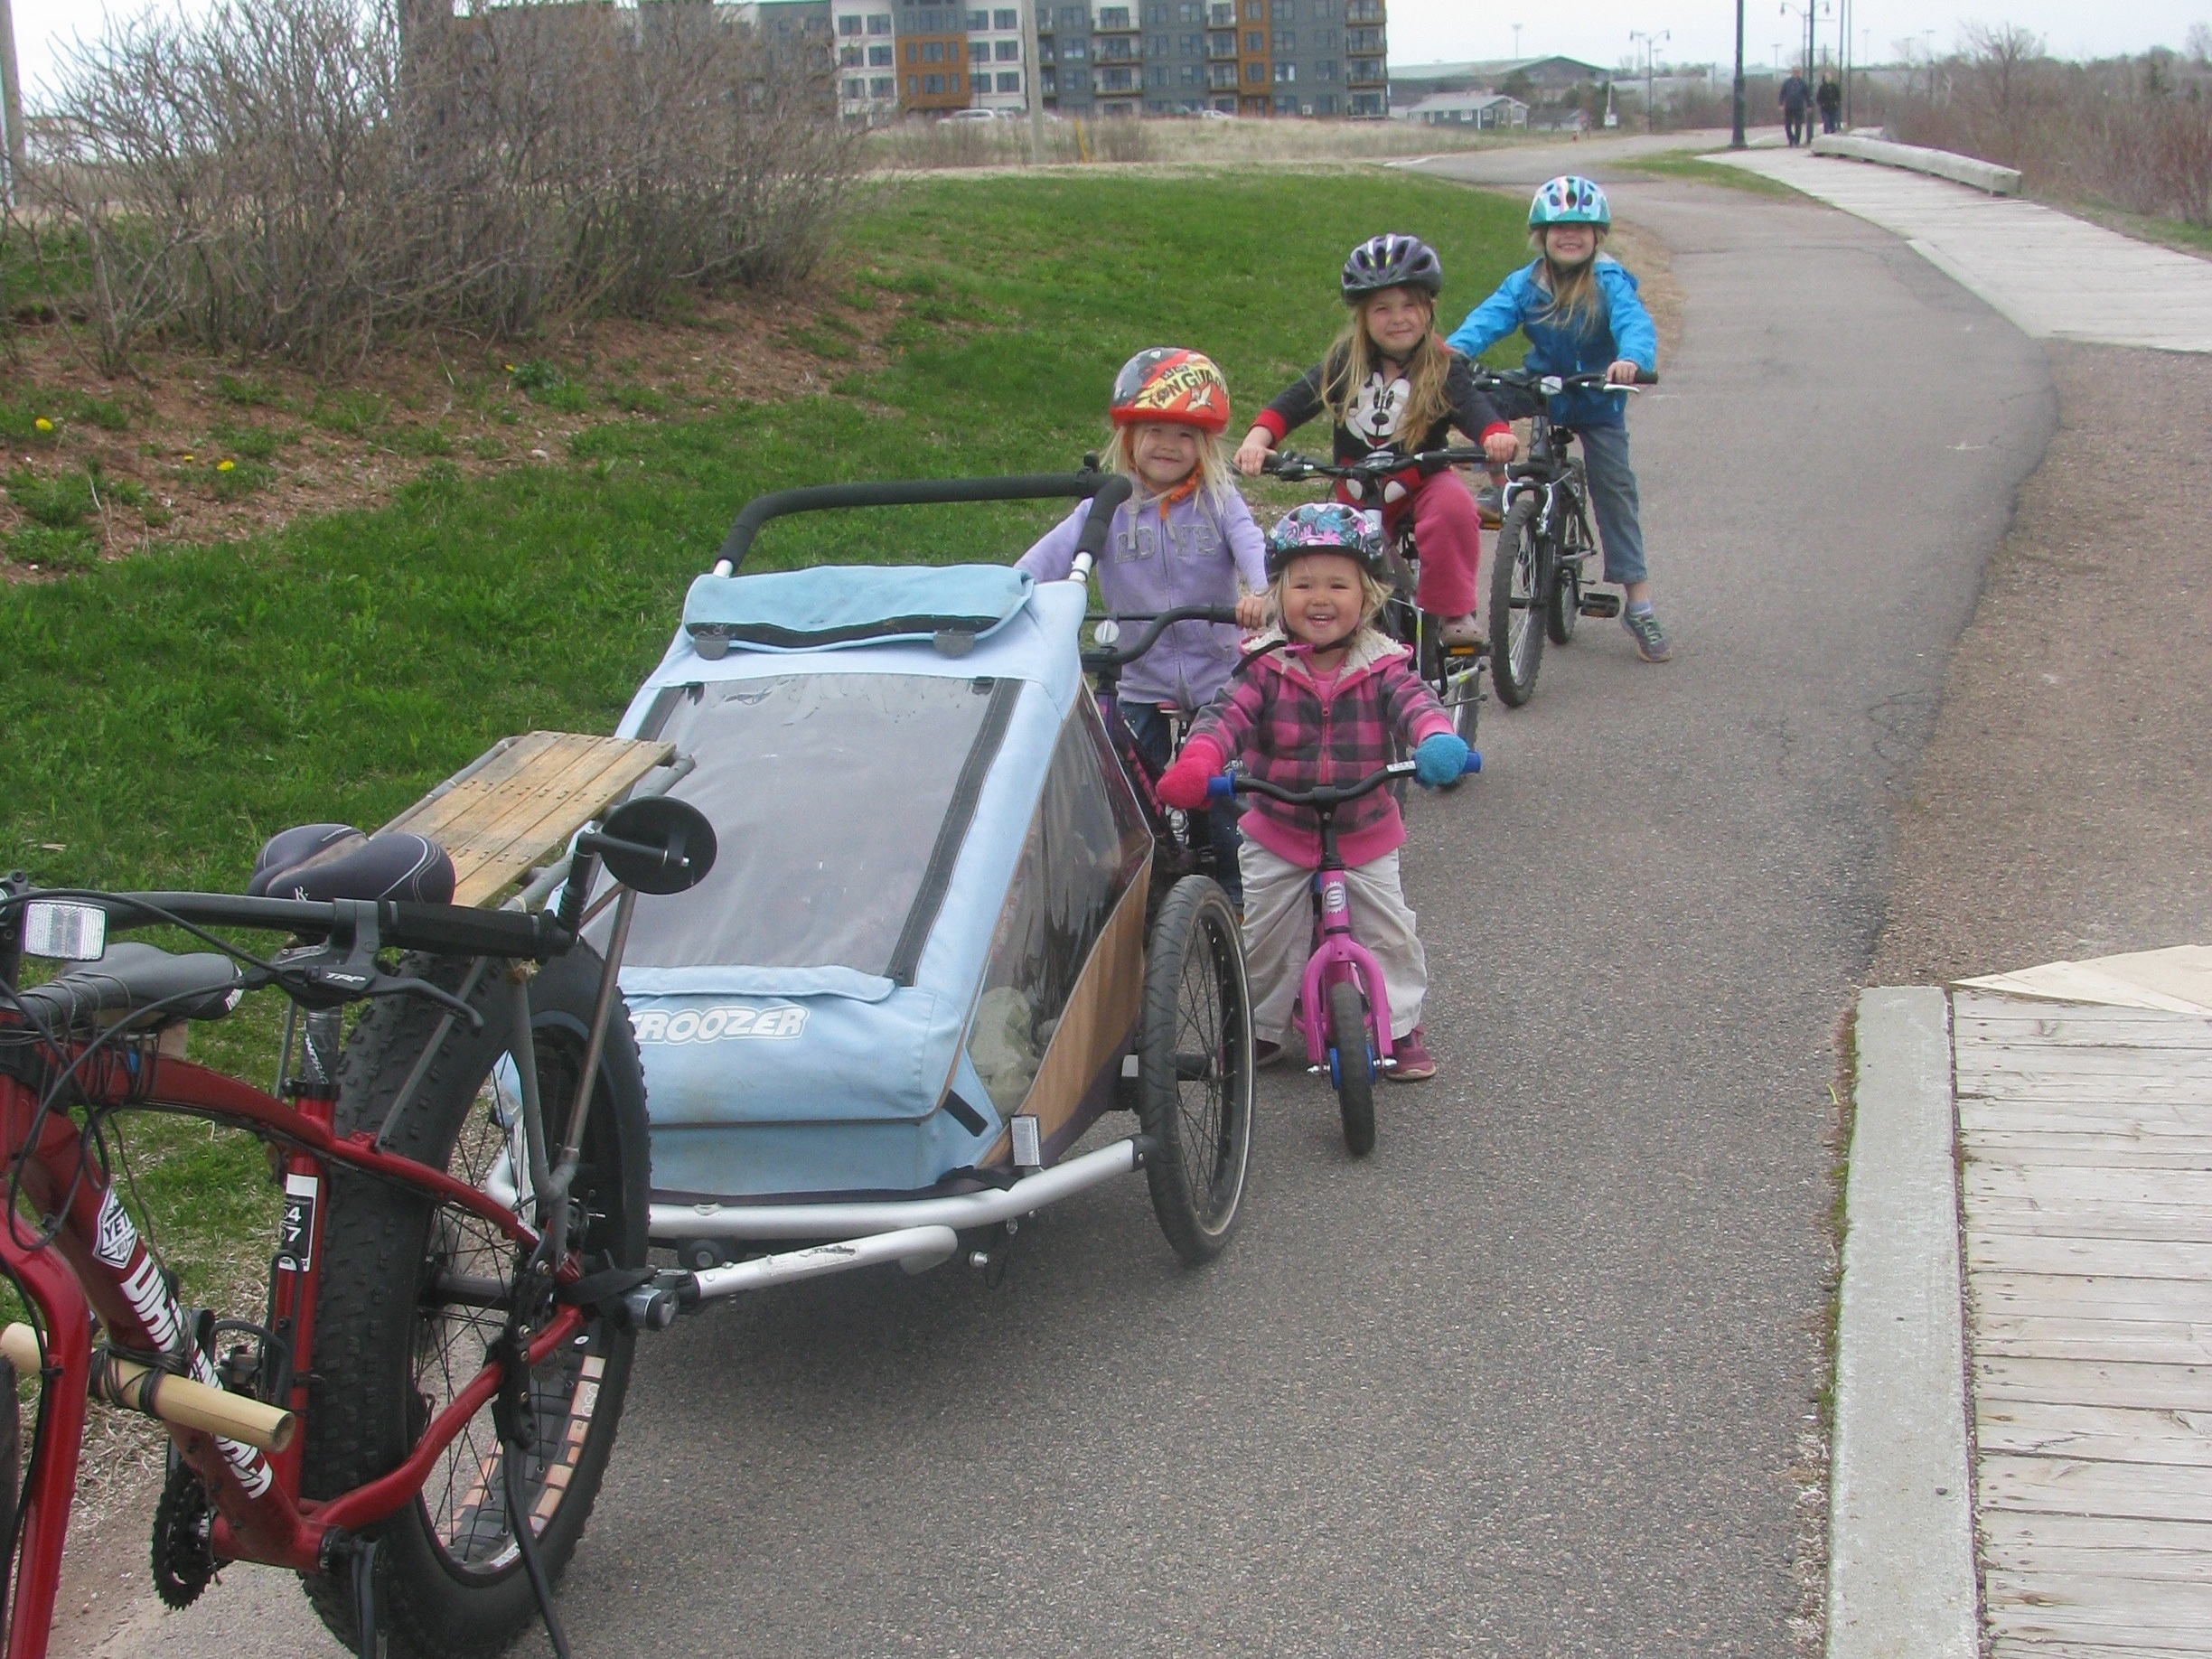 Enjoying a bike through town on a bike/walking path. Sprout #4 trades off riding her balance bike with riding in the trailer with her little sister.